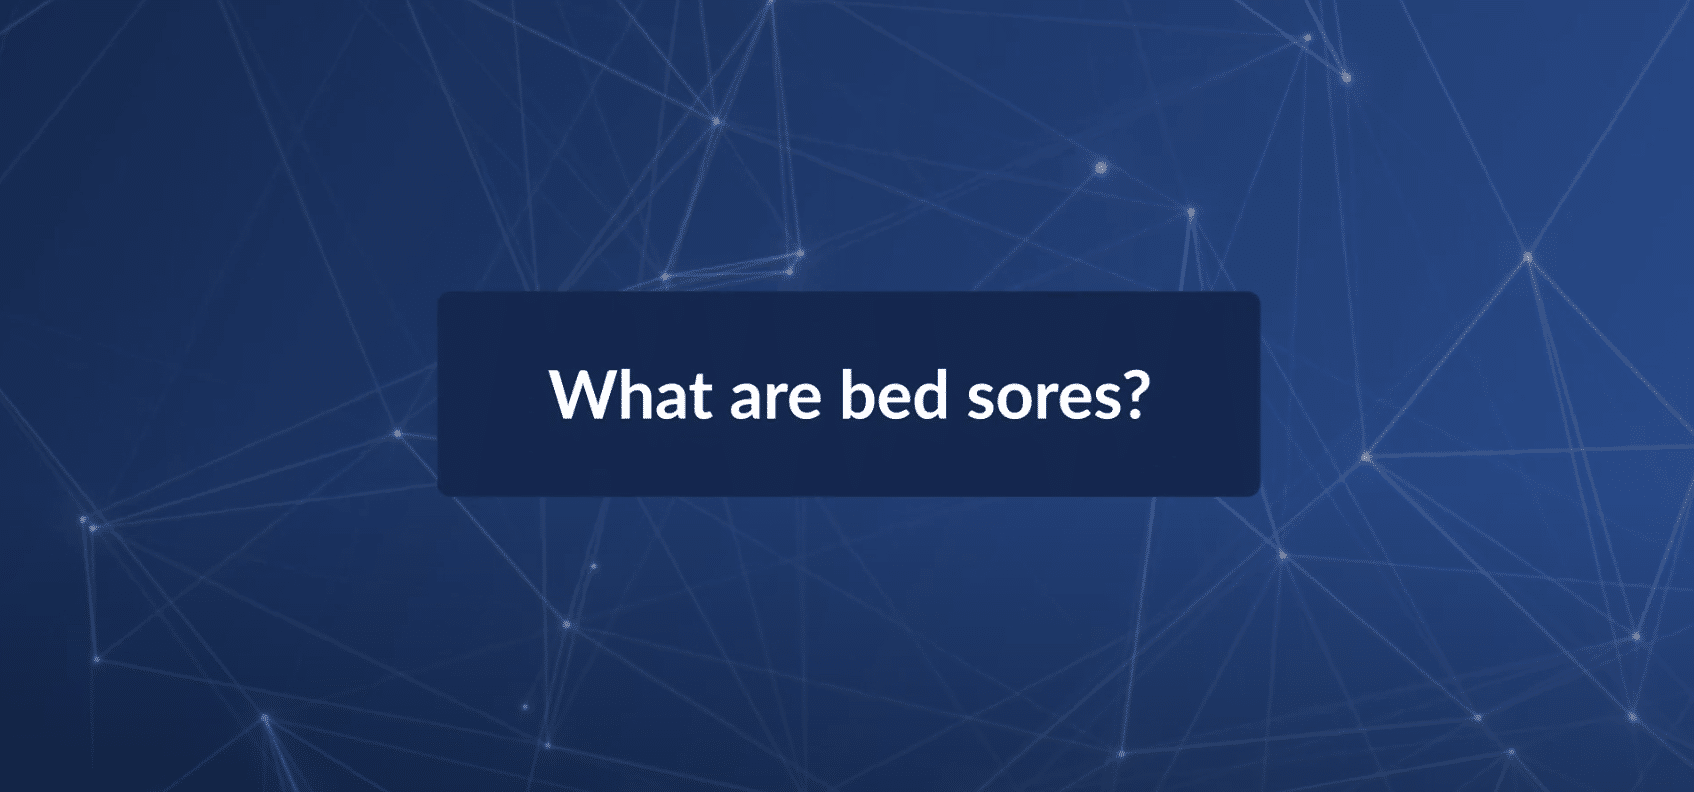 What Are Bed Sores?